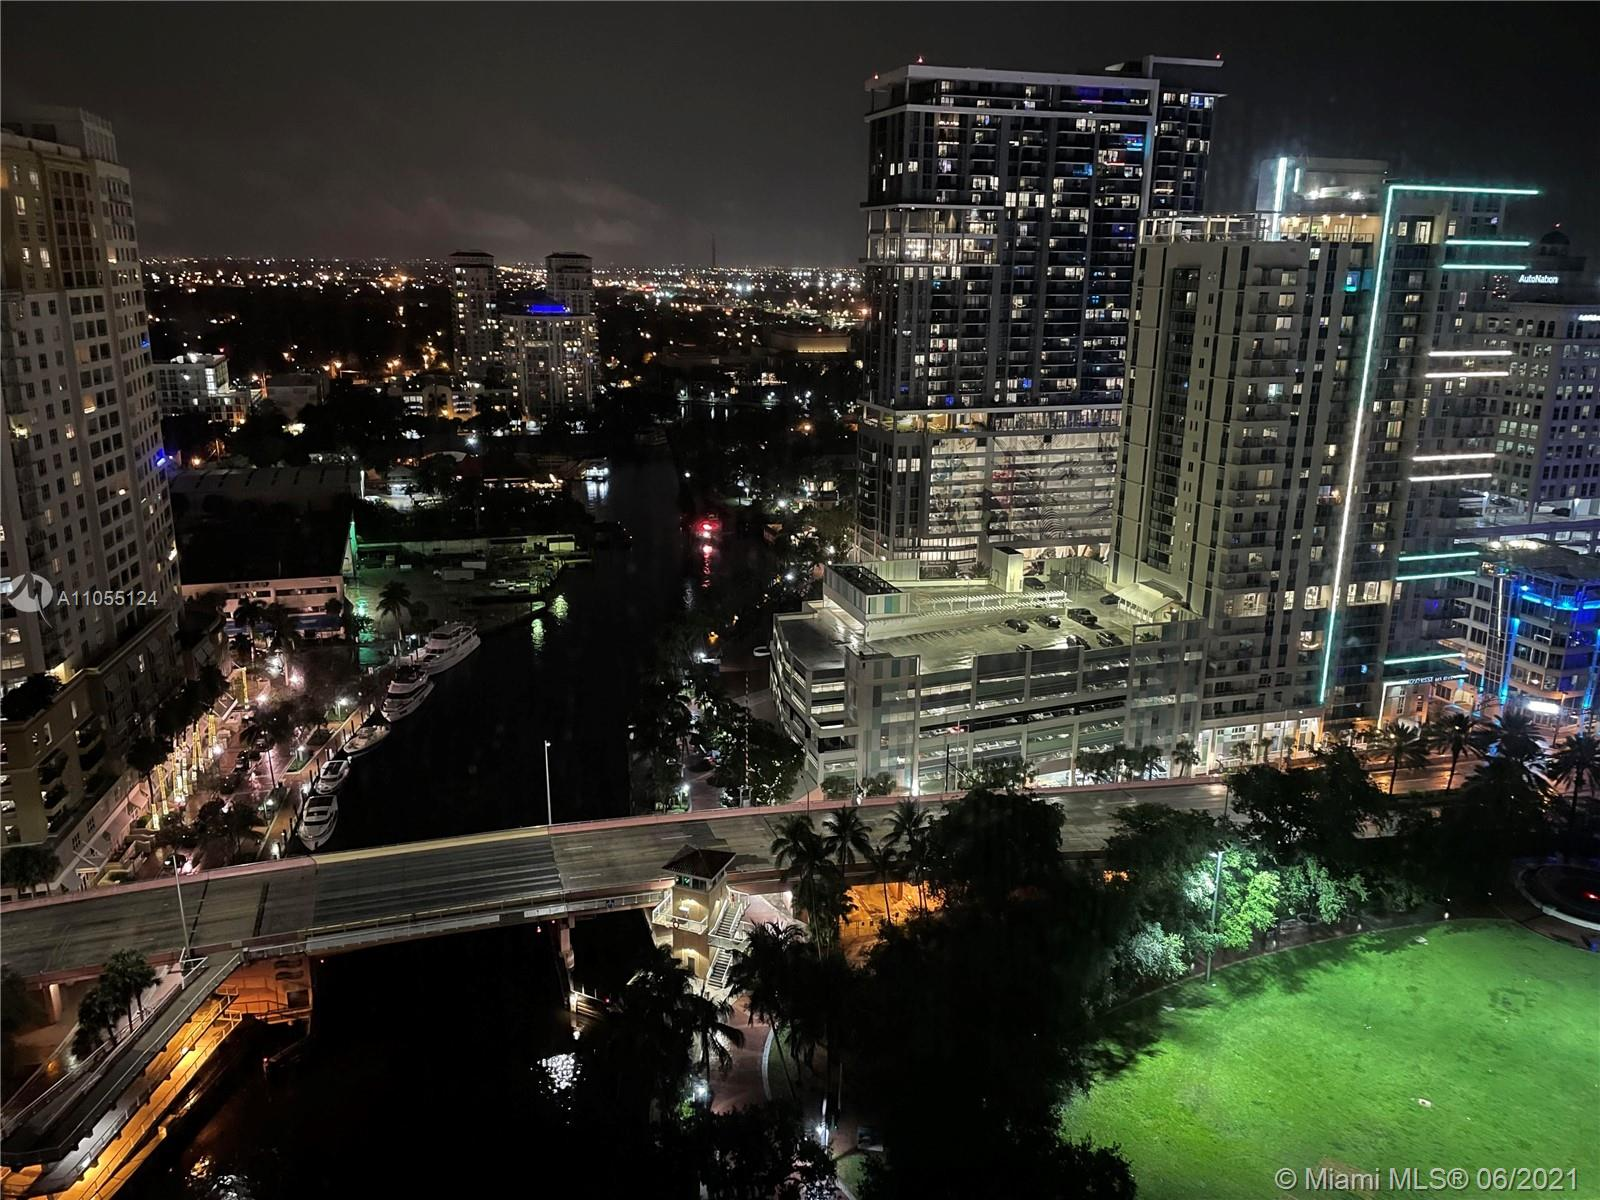 LOCATION LOCATION LOCATION! Live in the HEART of downtown in FTL's landmark tower, the LAS OLAS RIVER HOUSE. Semi-Private Foyer opens into a stunning wood floor unit with unrestricted views. This spacious 1200sqft 2/2 unit features floor to ceiling windows throughout. DESIGNER kitchen area, master suite with walk-in and more. The River House offers a 5 star lifestyle with 24 hour valet, concierge, fitness center with classes, 6th floor resort style pool/grill/hot tub/putting green with views of the Riverwalk, sunsets and Huizenga park. Look no further- THIS is YOUR new home! Must be Accompanied by Listing Agent for all showings. Limited Showing Days available- contact Listing Agent for full details. Unfurnished Rental is $3900/month. Furnished Rental available at $5000/month.